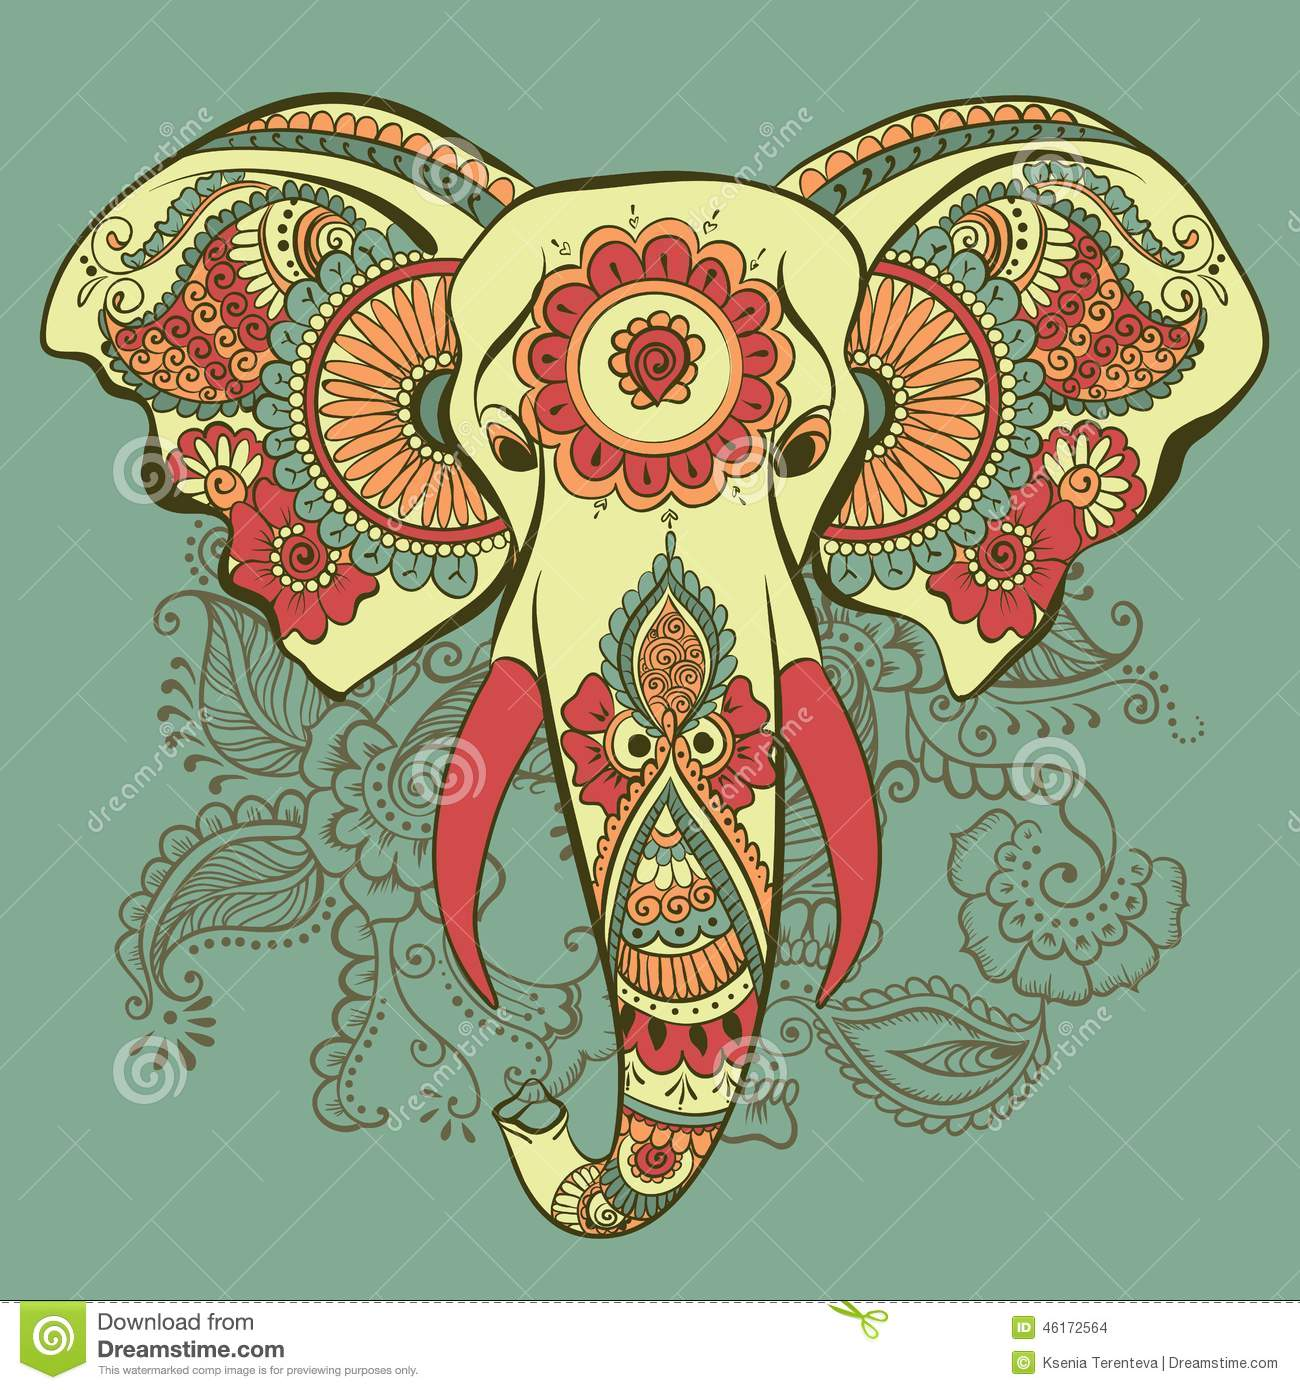 Free ornamental mandala vector download free vector art stock - Vector Elephant On The Henna Indian Ornament Stock Vector